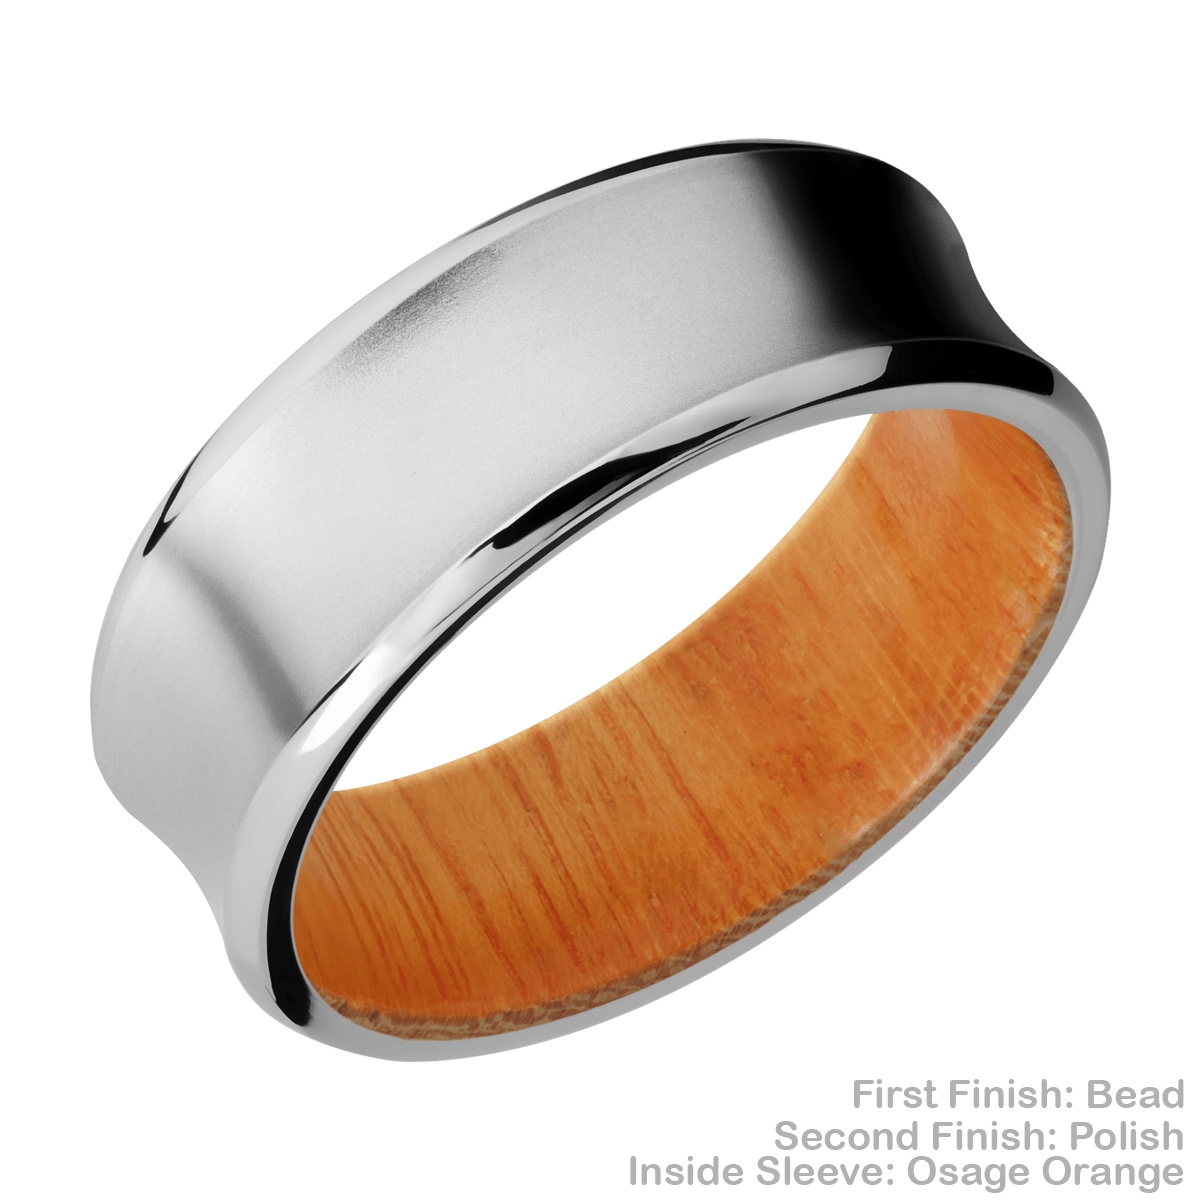 Lashbrook HWSLEEVECC8CB Cobalt Chrome and Hardwood Wedding Ring or Band Alternative View 6